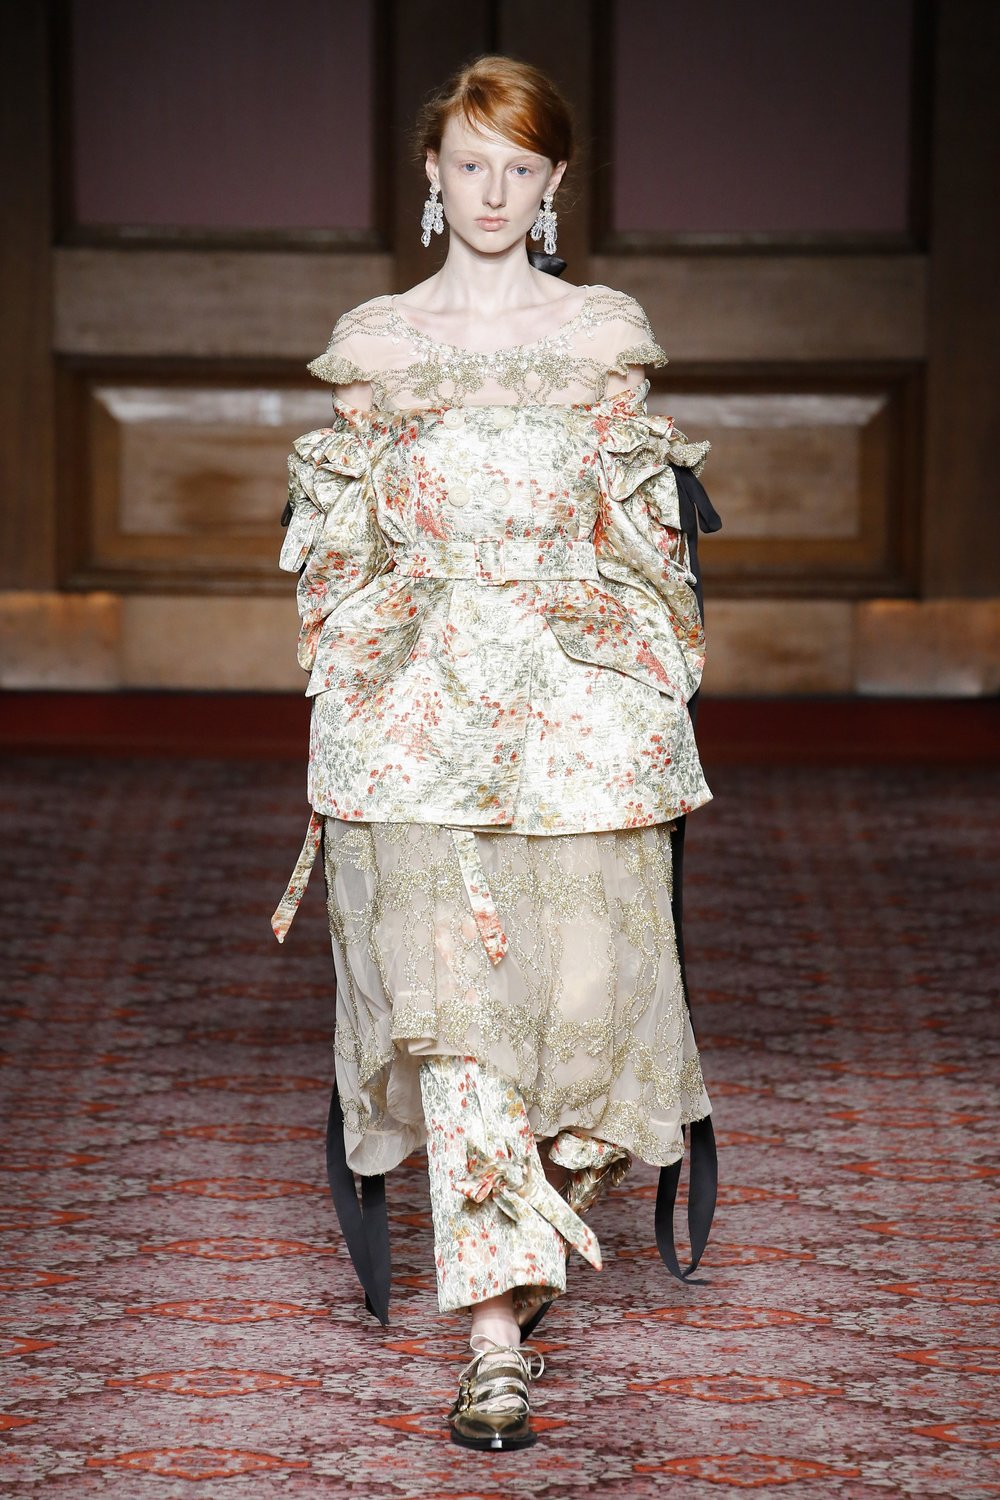 simone-rocha-london-fashion-week-fall-2018-rtw-1.jpg